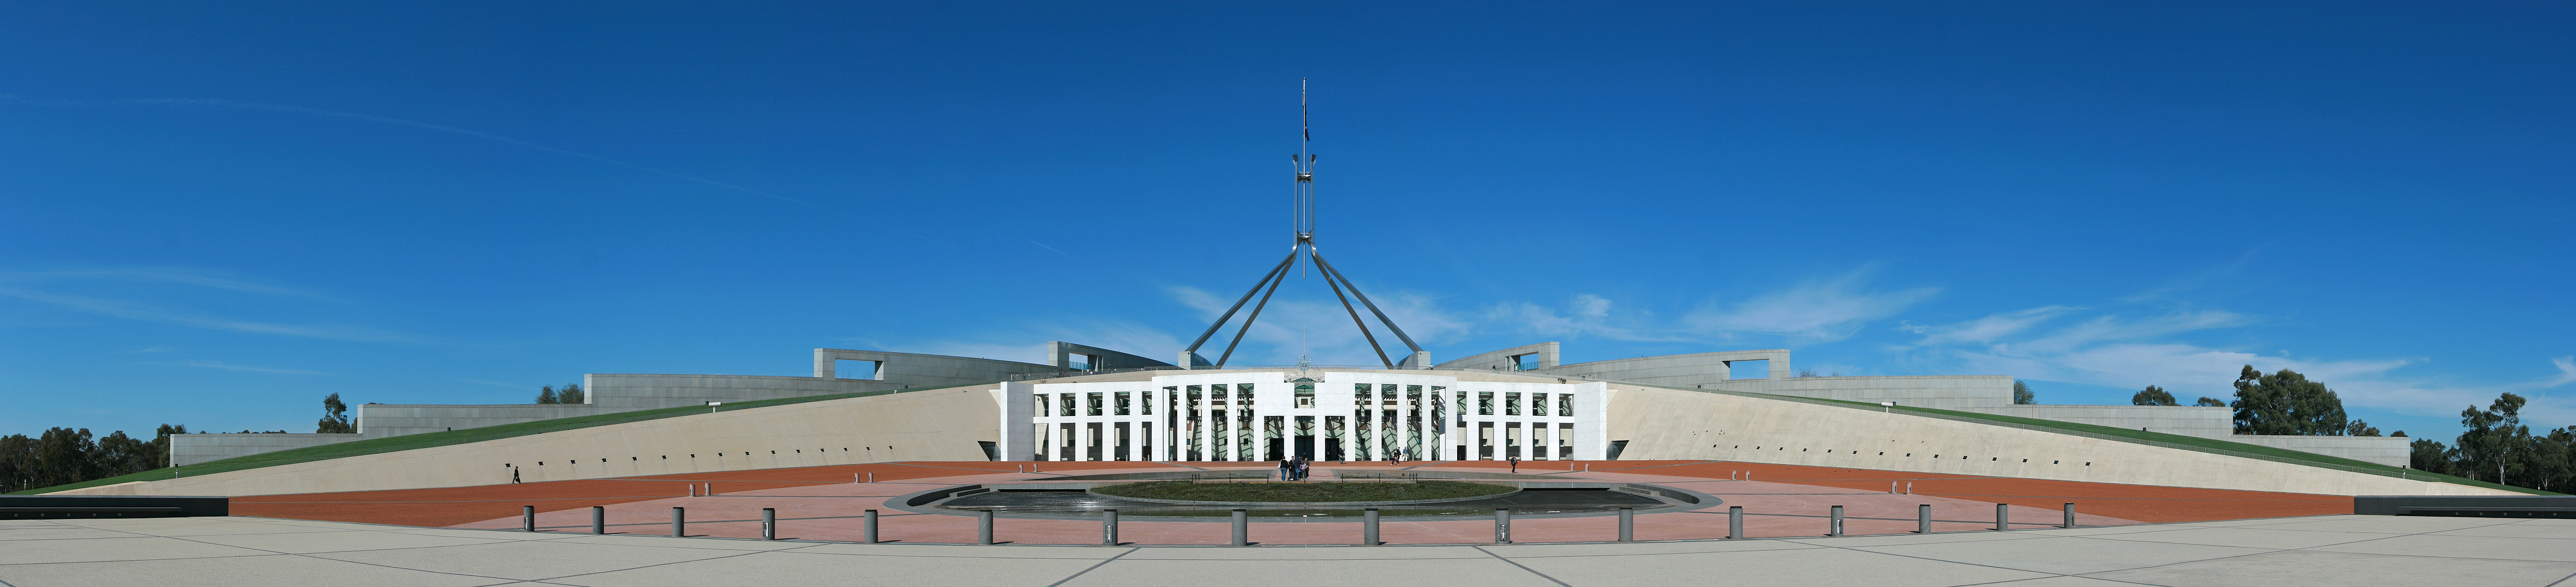 Parliament House Canberra Wikipedia